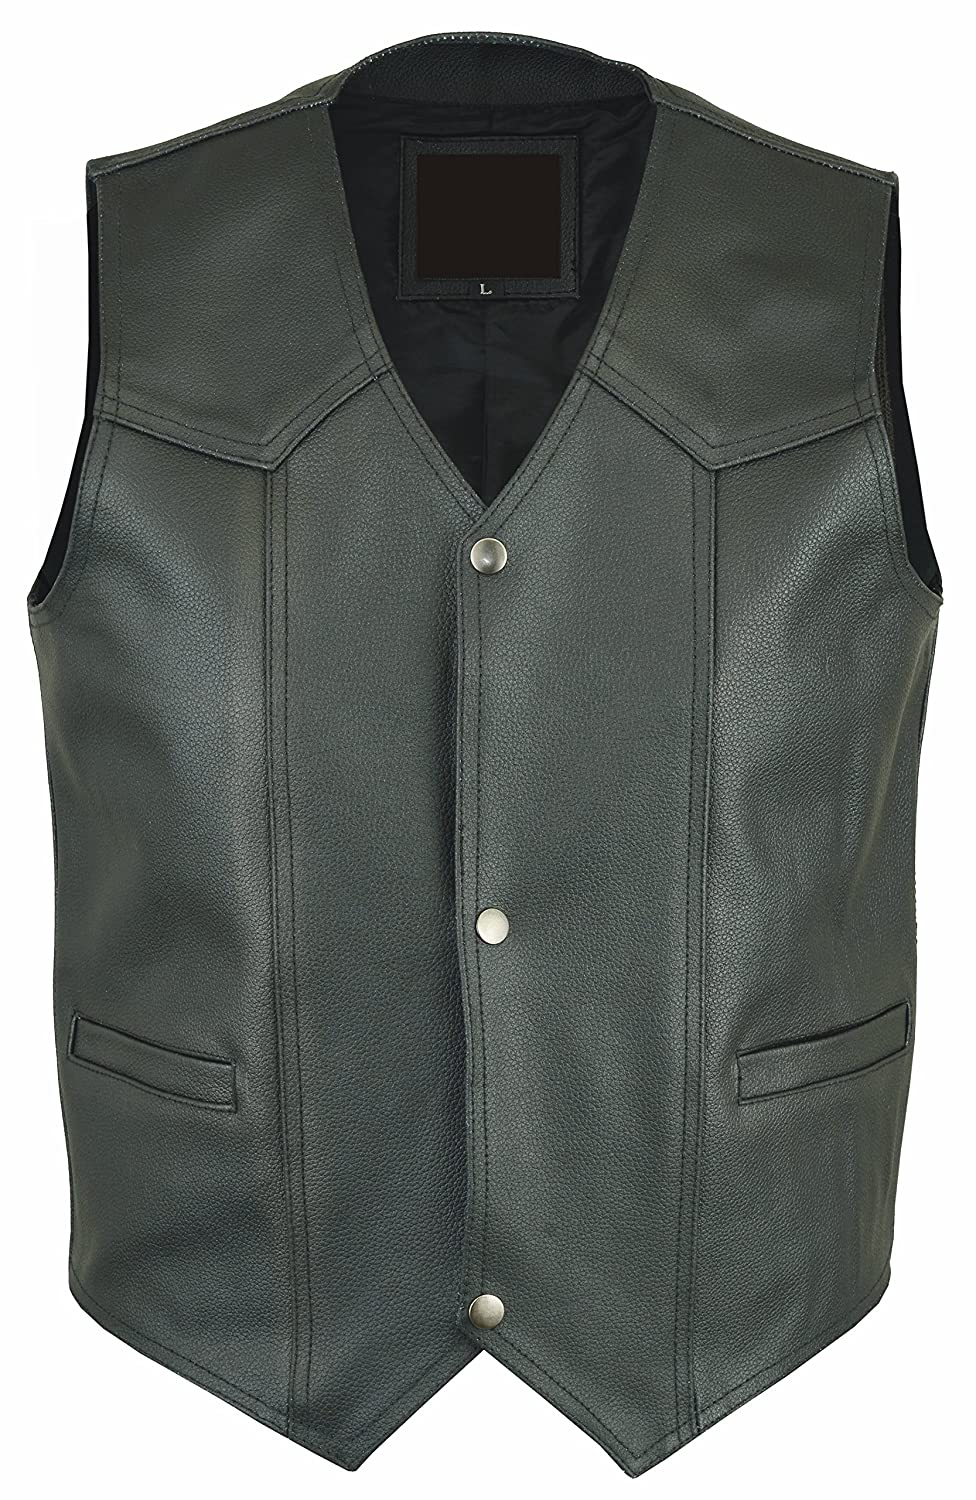 MENS Rd-603 Black LEATHER WAISTCOAT MOTORBIKE / MOTORCYCLE Vest